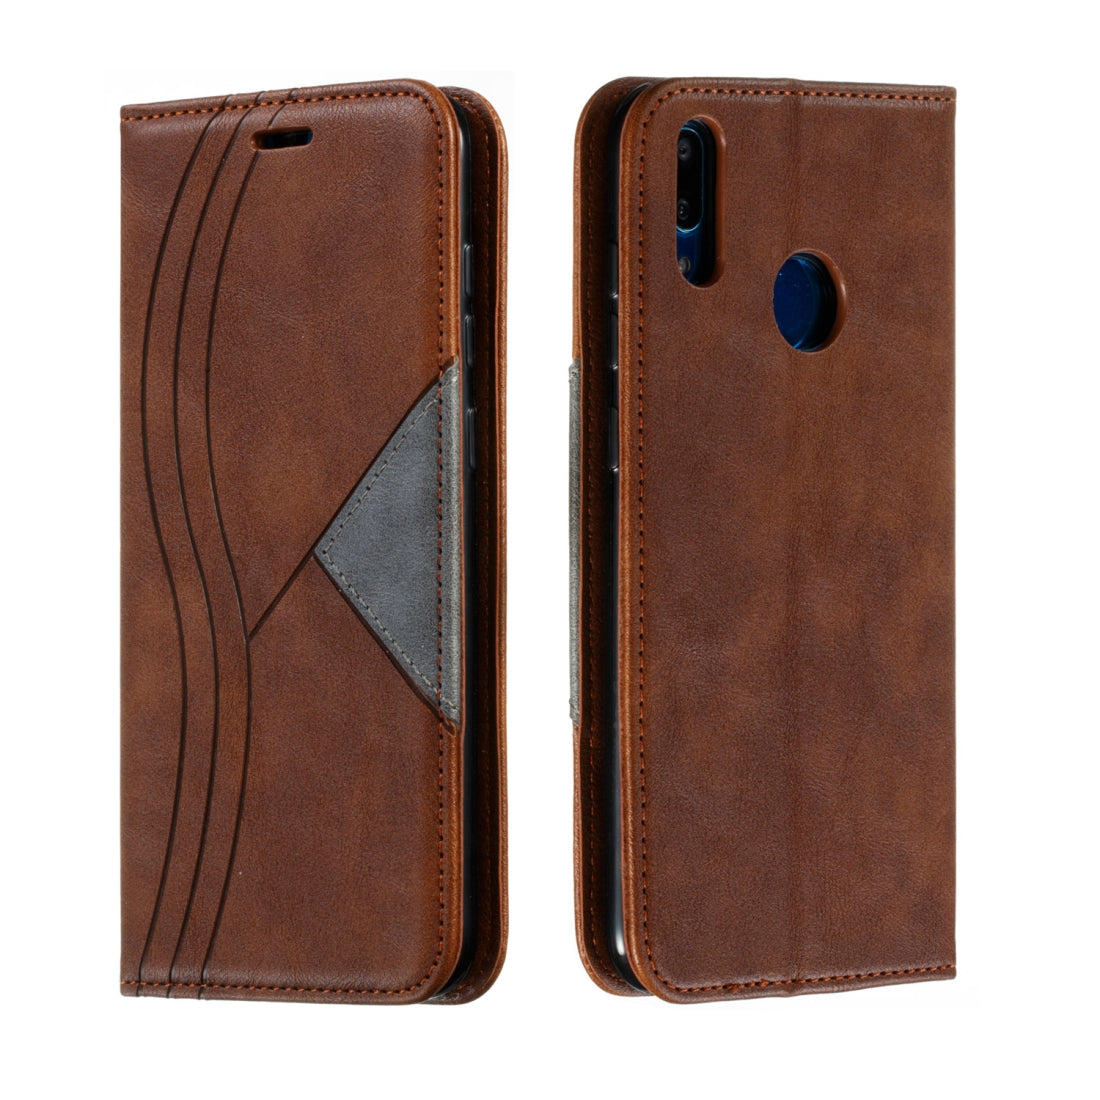 For Huawei Y7 2019 / Enjoy 9 / Y7 Prime 2019 / Y7 Pro 2019 Splicing Color Magnetic Hem Horizontal Flip Leather Case with Holder & Card Slots(Brown)